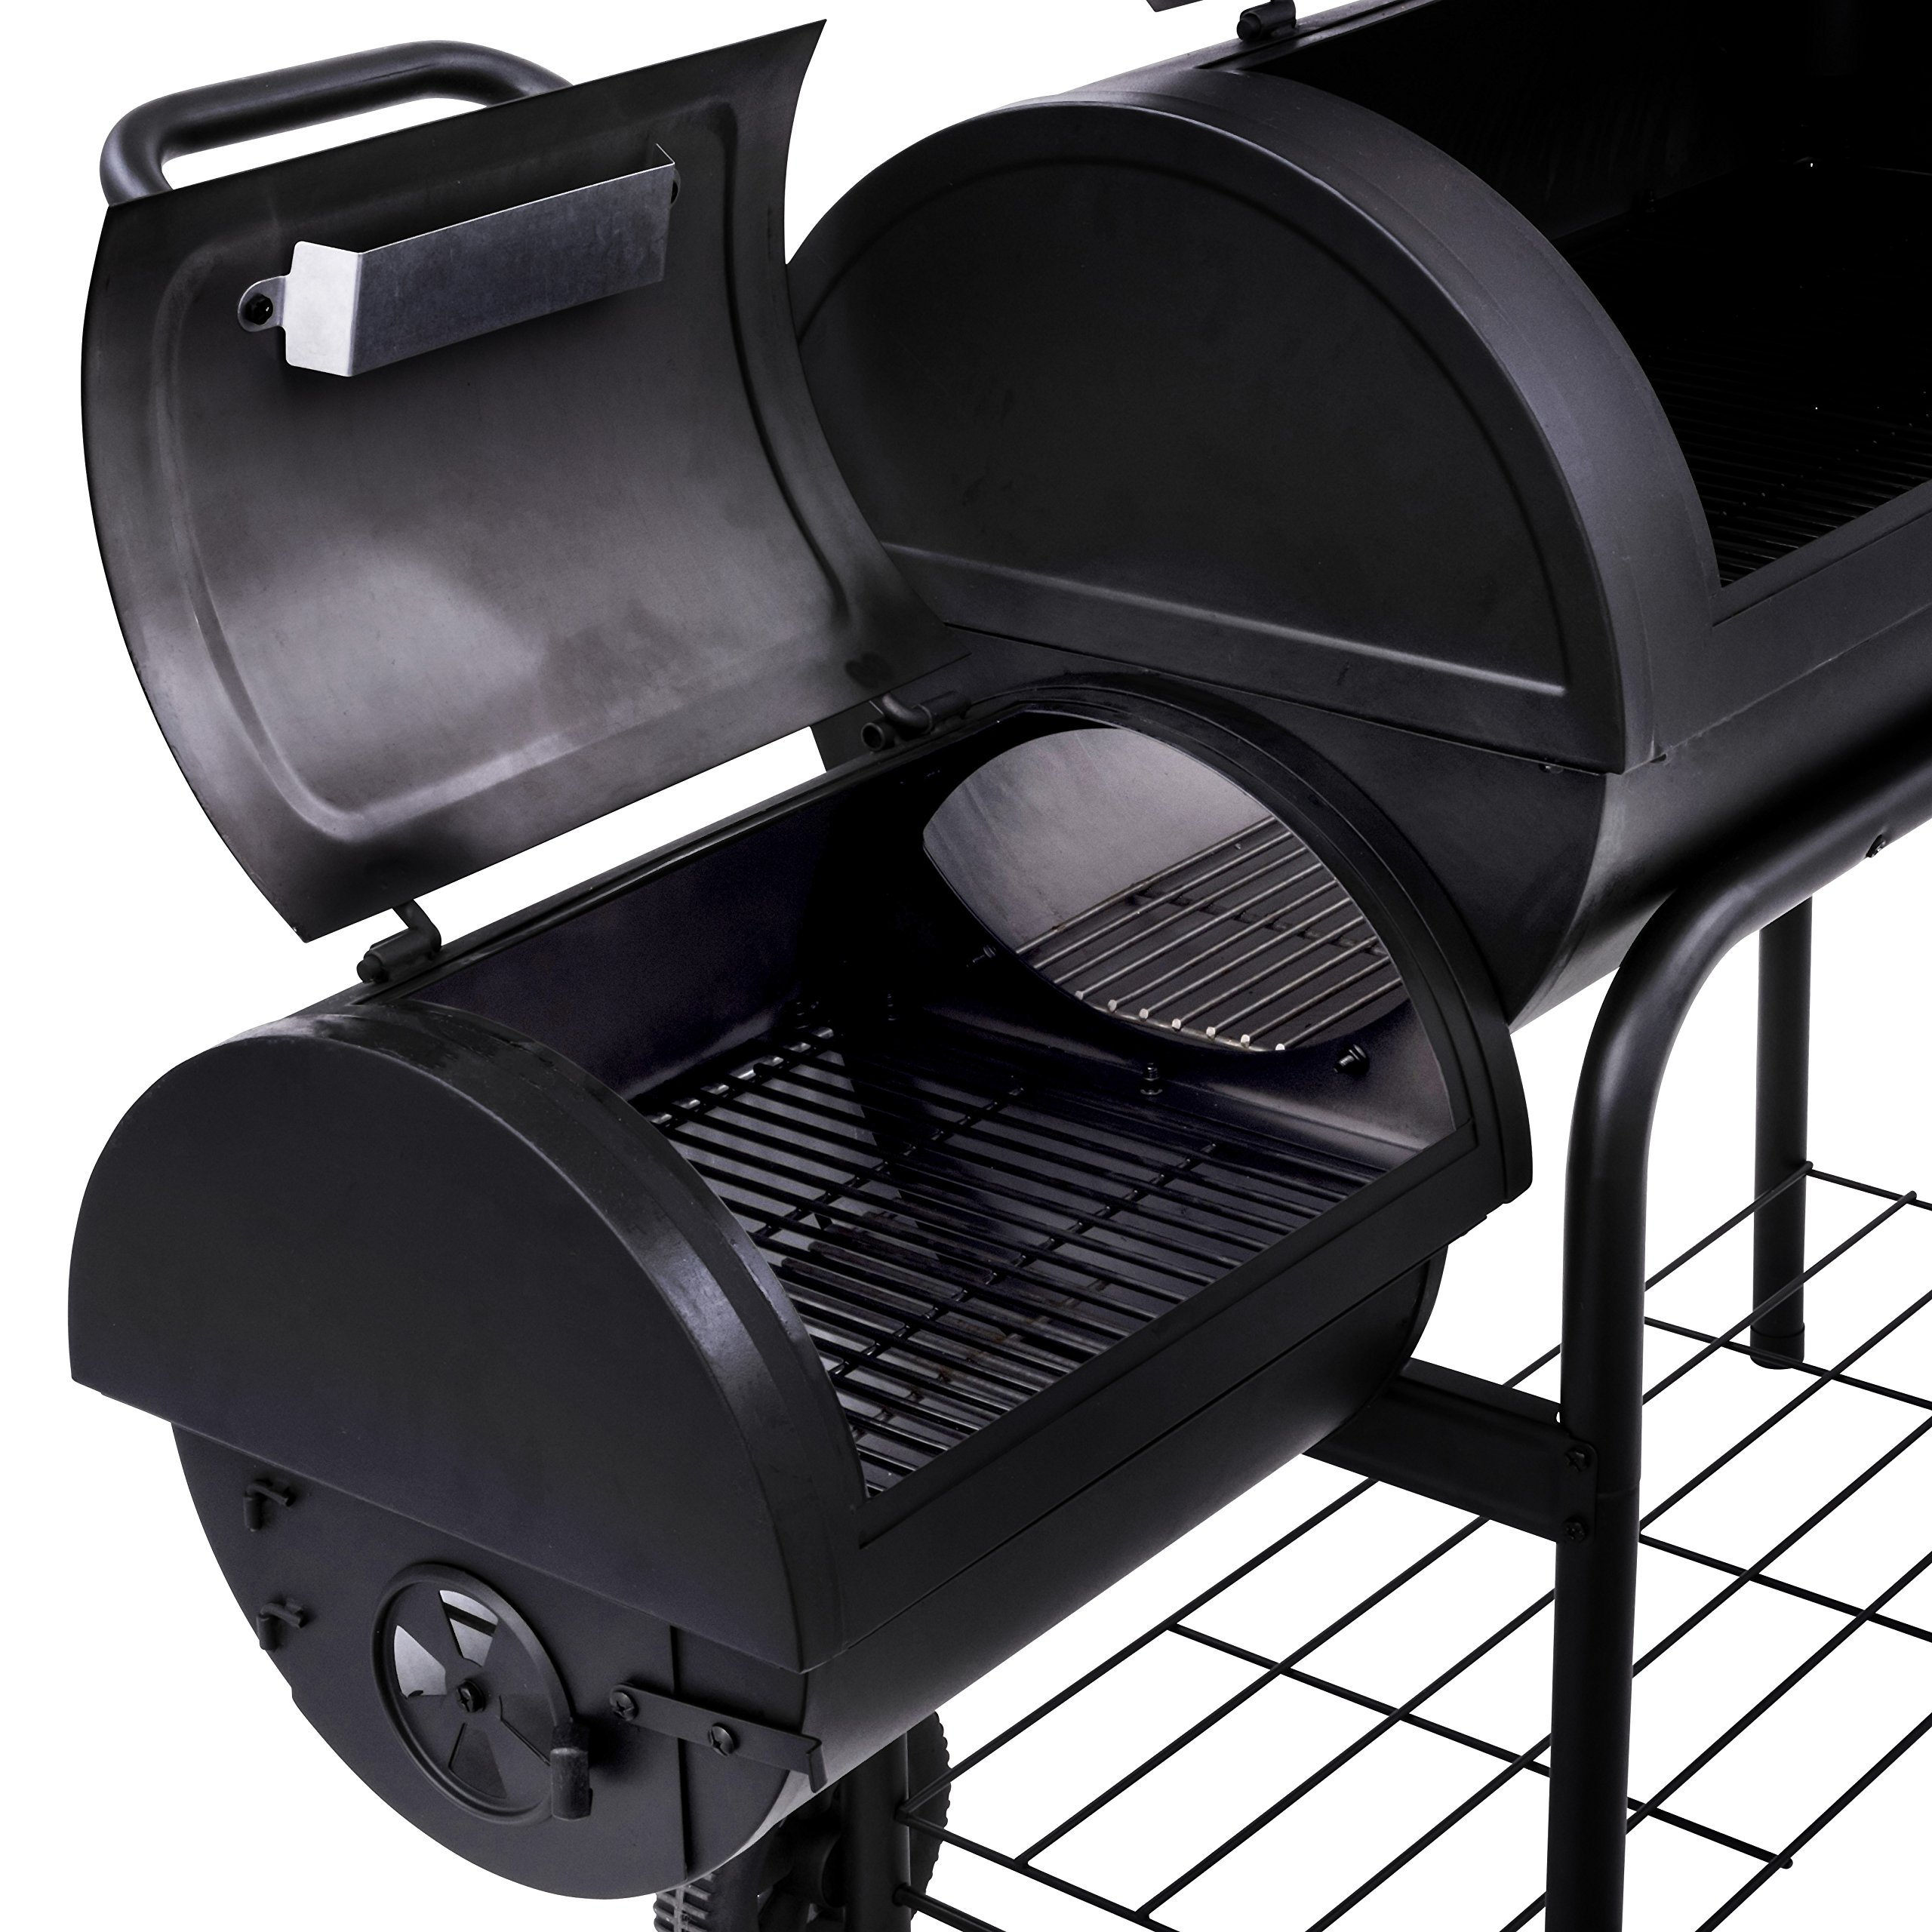 Char-Broil Offset Smoker, 40'' by Char-Broil (Image #7)